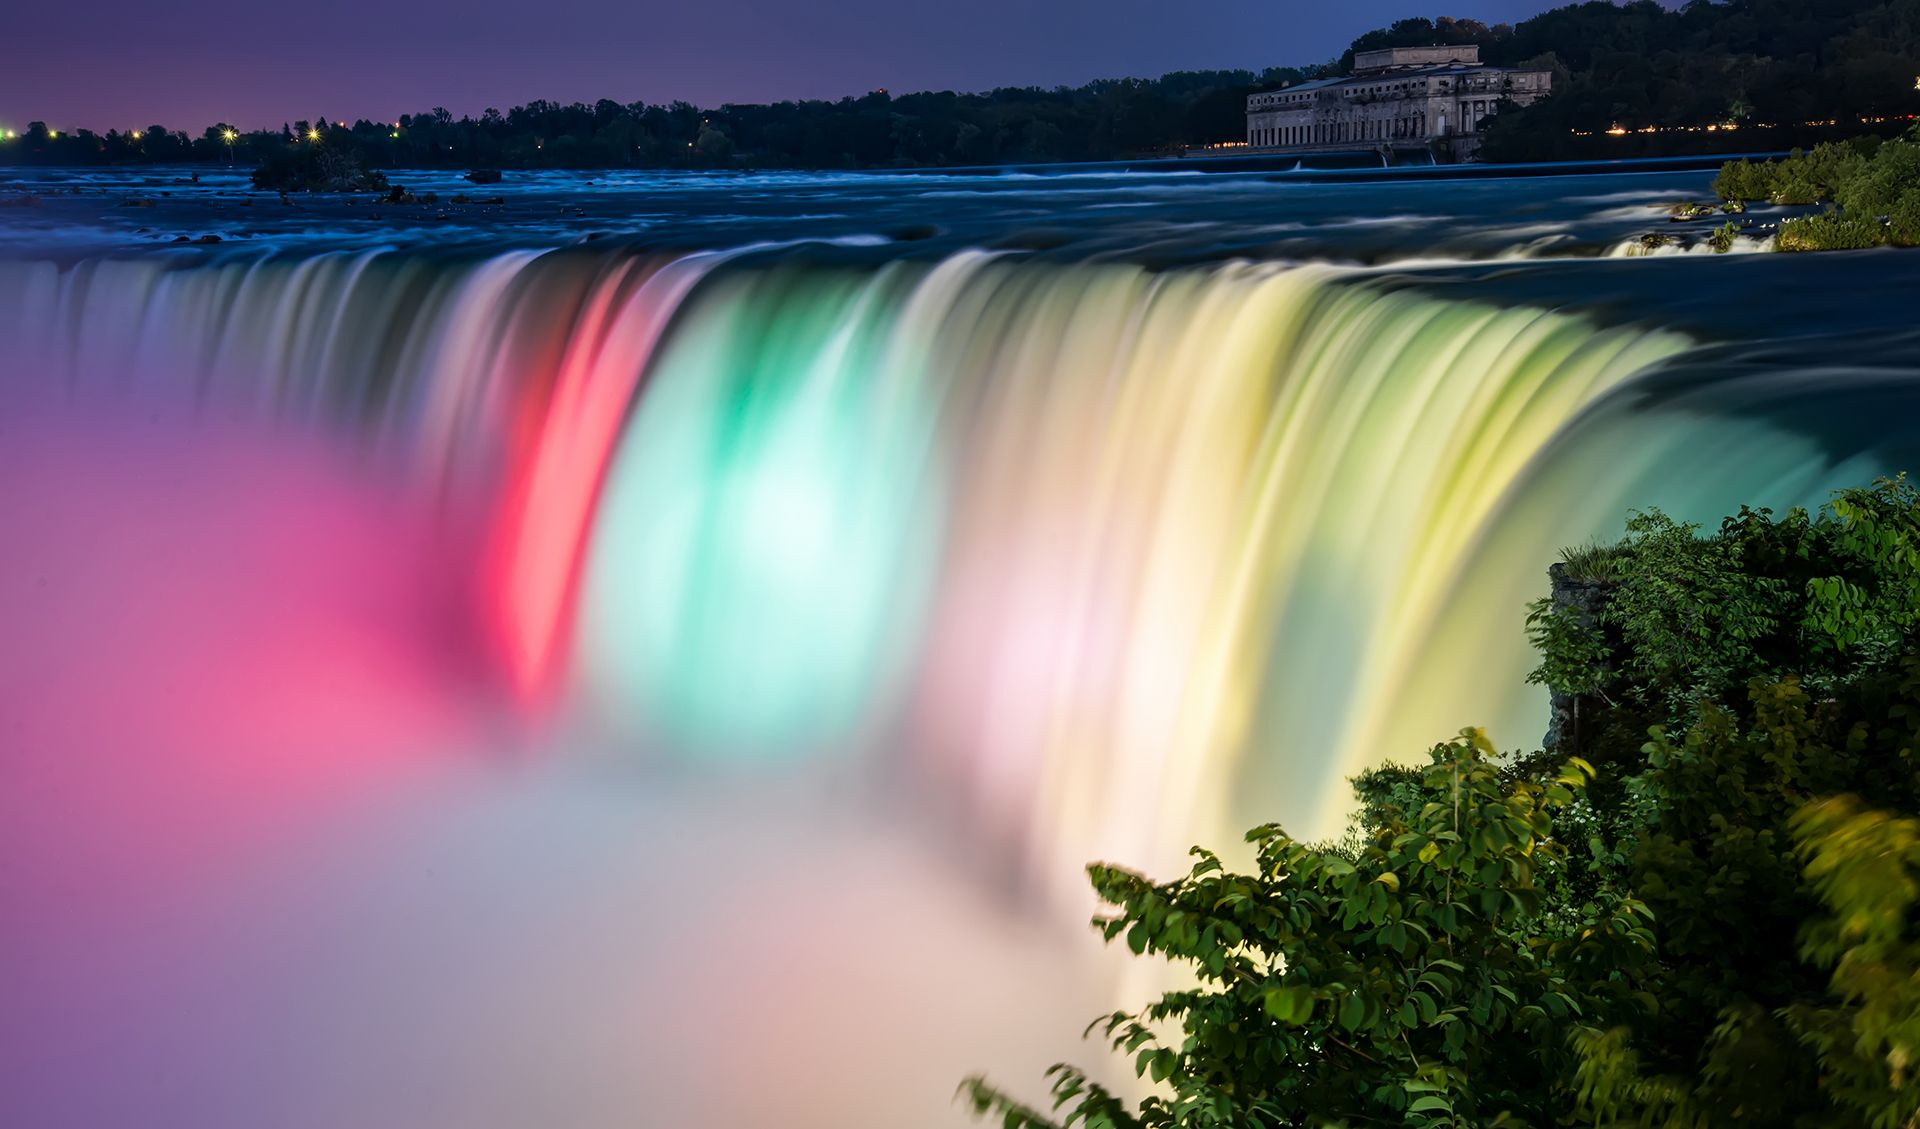 NIAGARA FALLS AT NIGHT GLOSSY POSTER PICTURE PHOTO ontario canada new york 1589